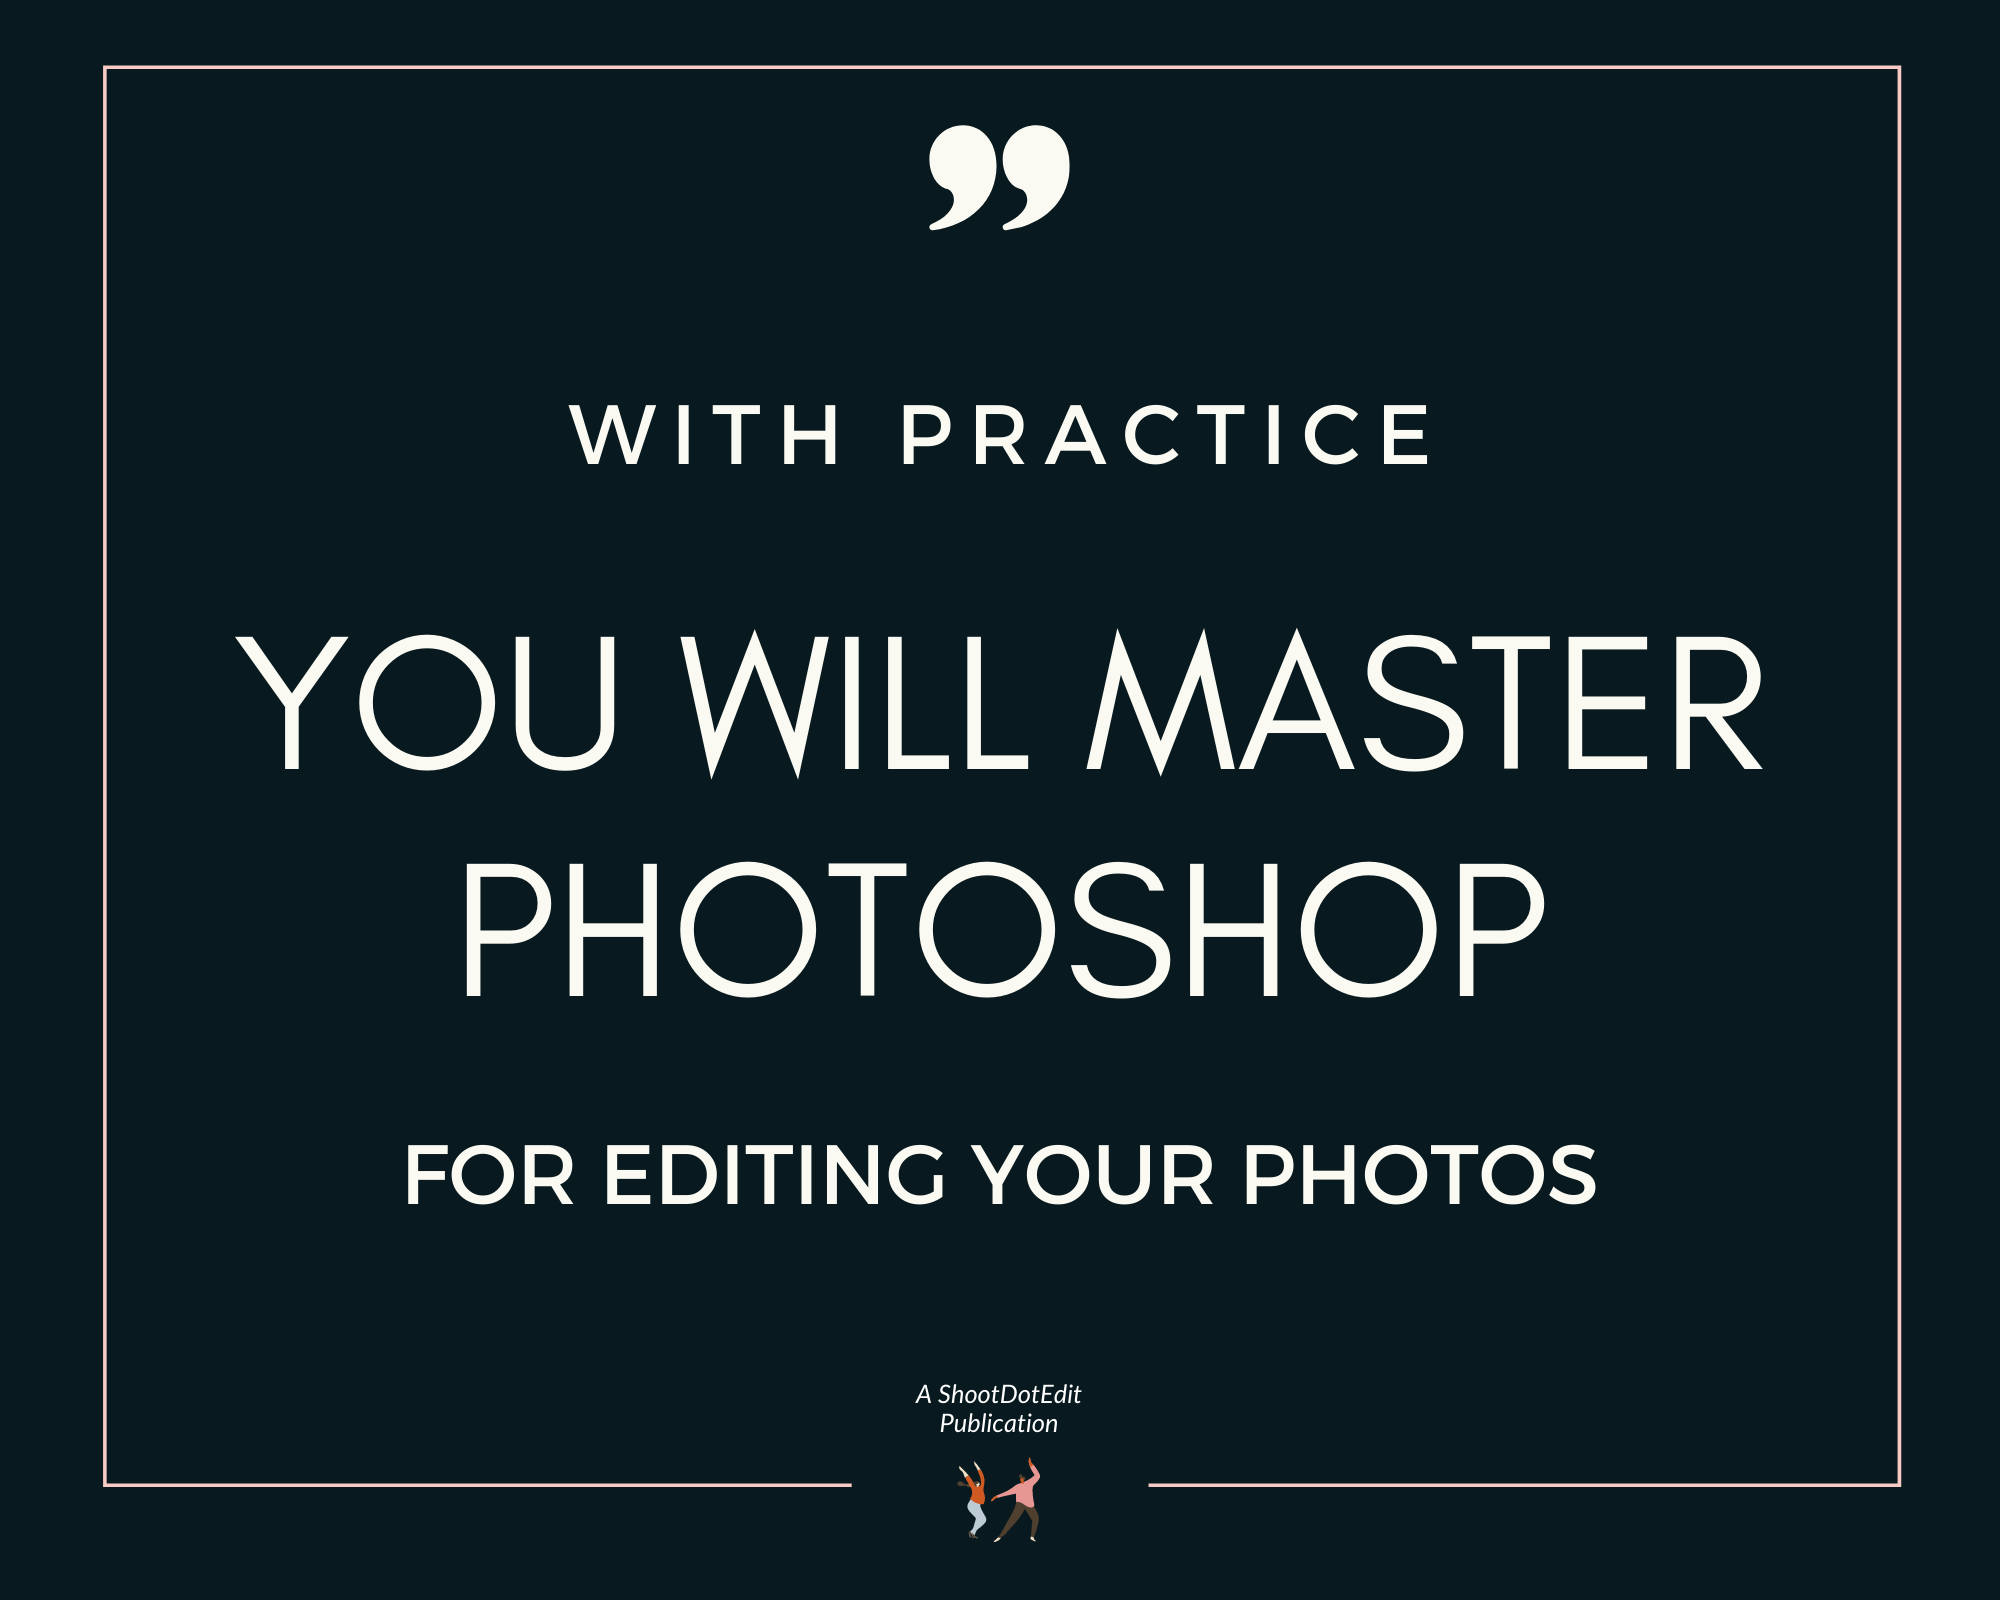 Infographic stating with practice you will master photoshop for editing your photos